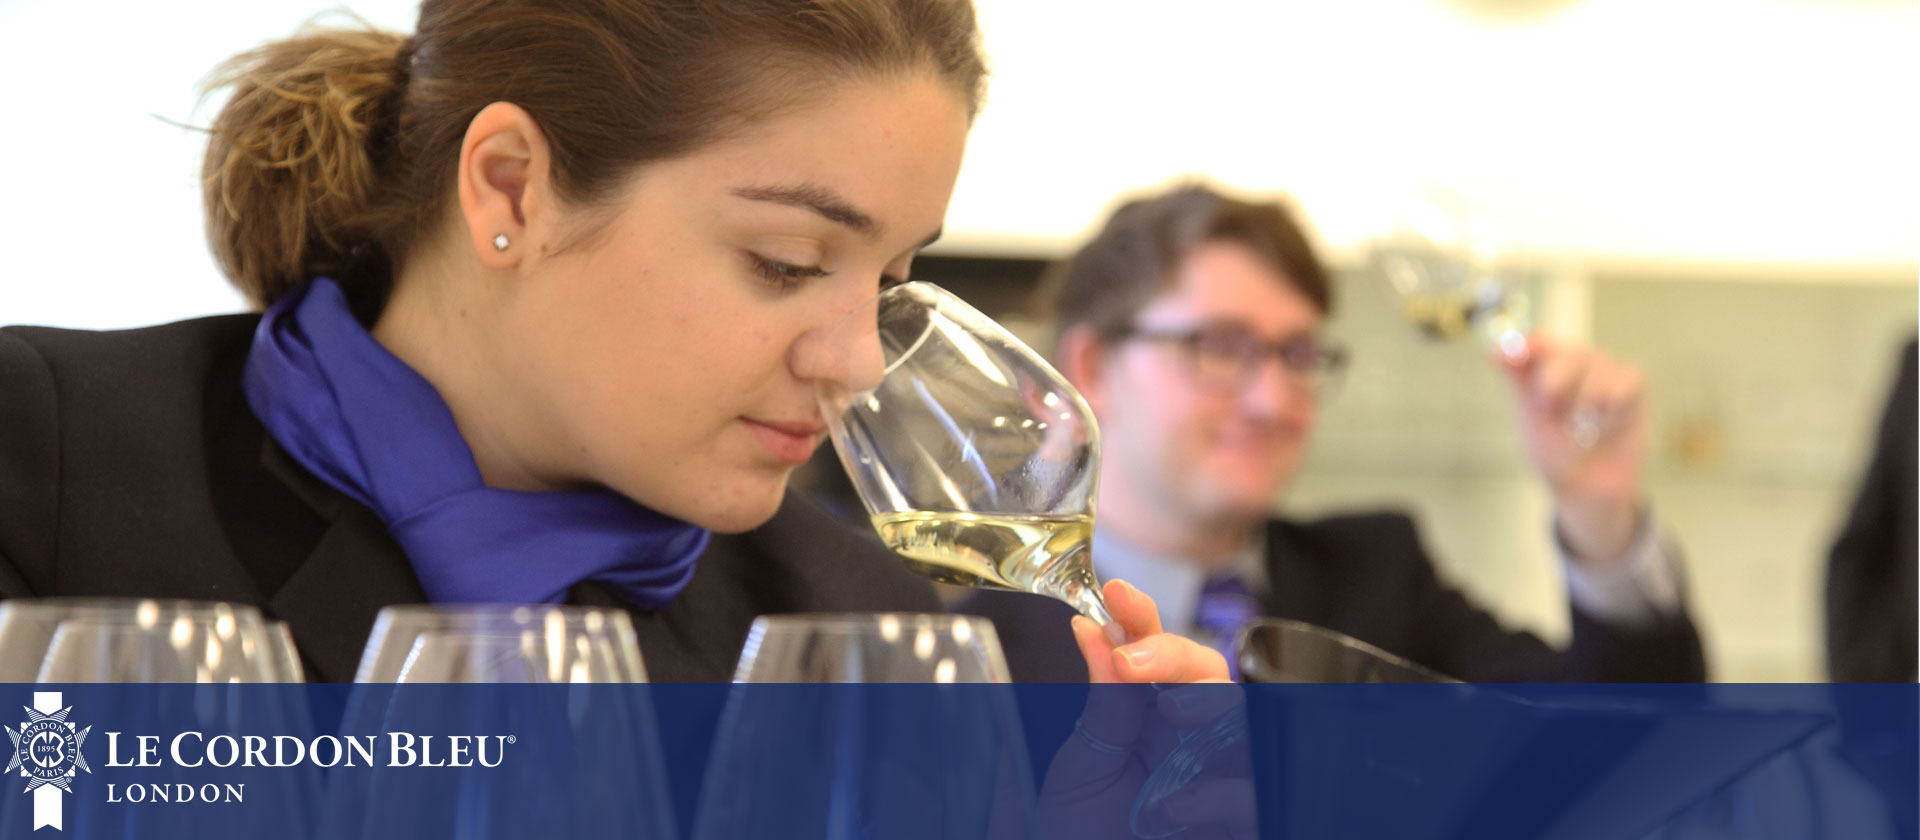 Wine Careers - Le Cordon Bleu London